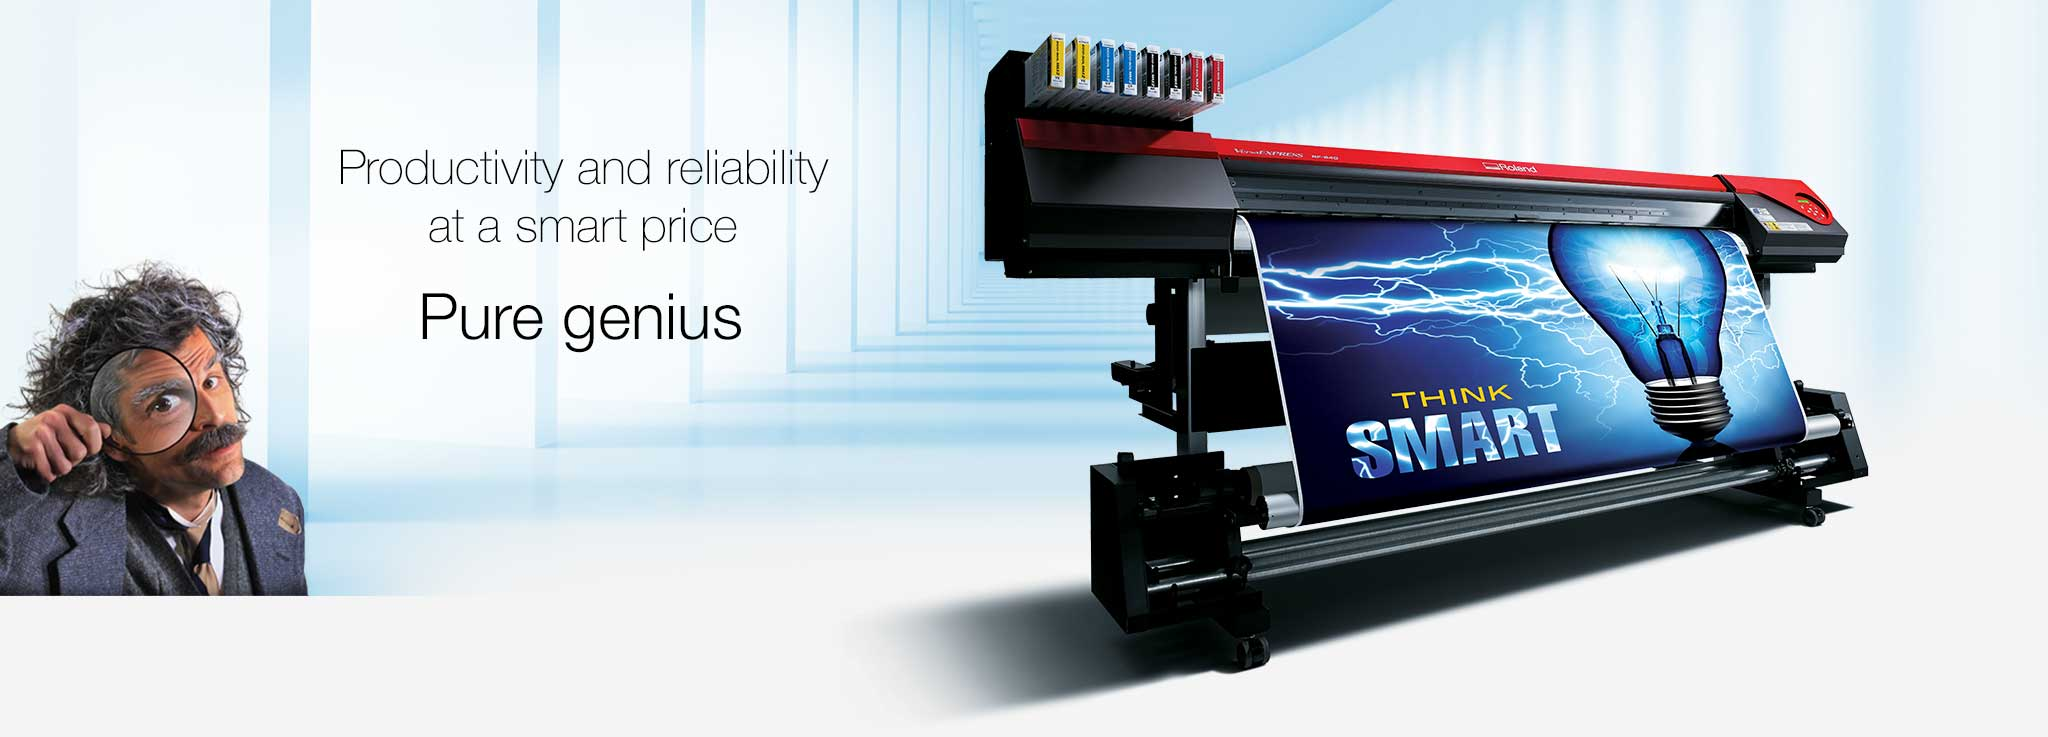 https://www.axvistech.pt/wp-content/uploads/2015/07/-wide-format-printer-rf640-lg-r-900x324.jpg?900x324